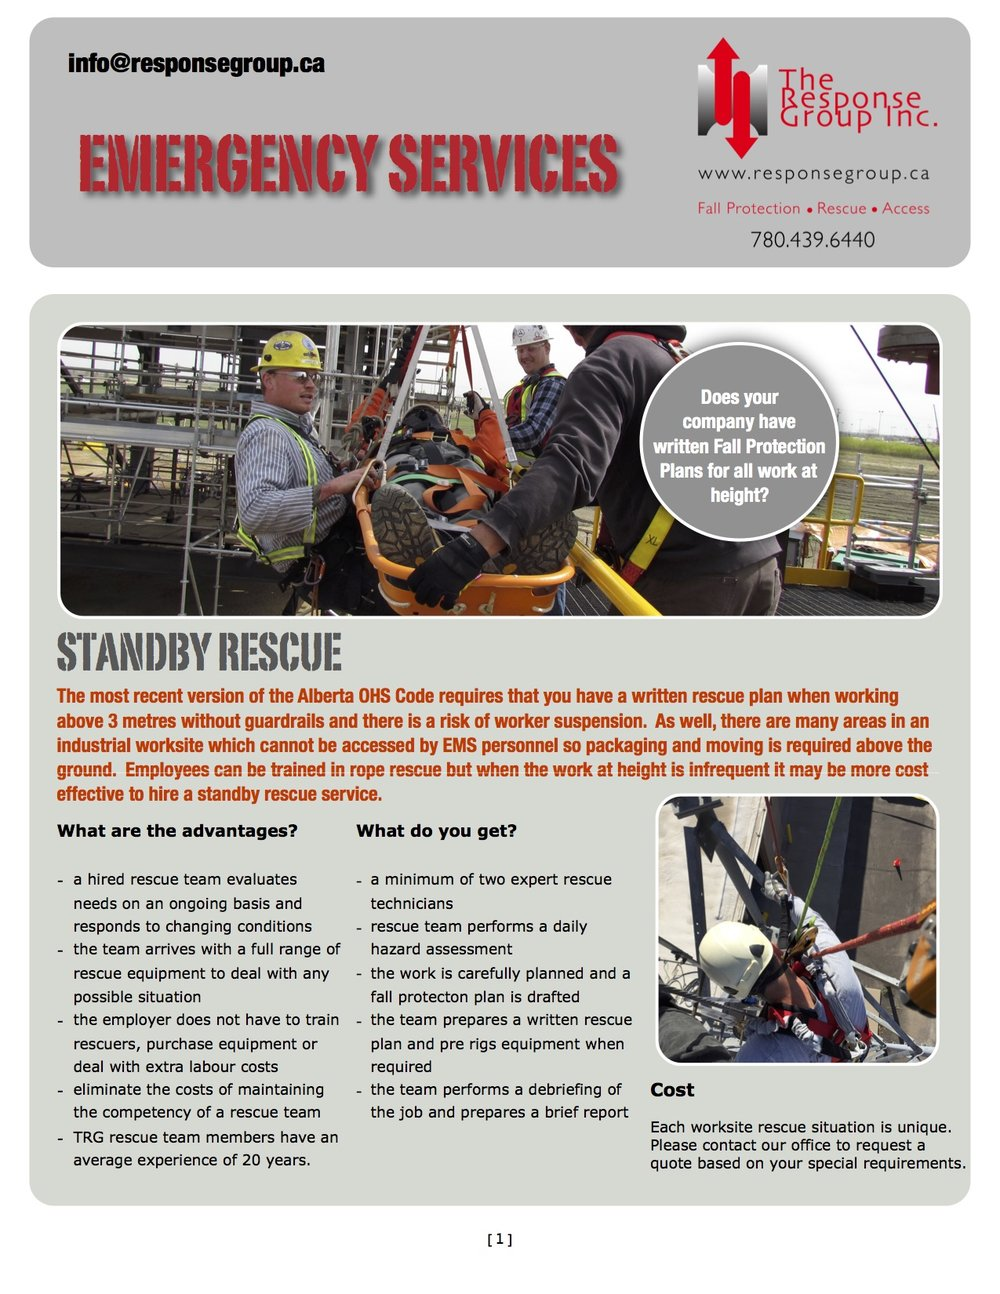 standby rescue brochure jpeg.jpg